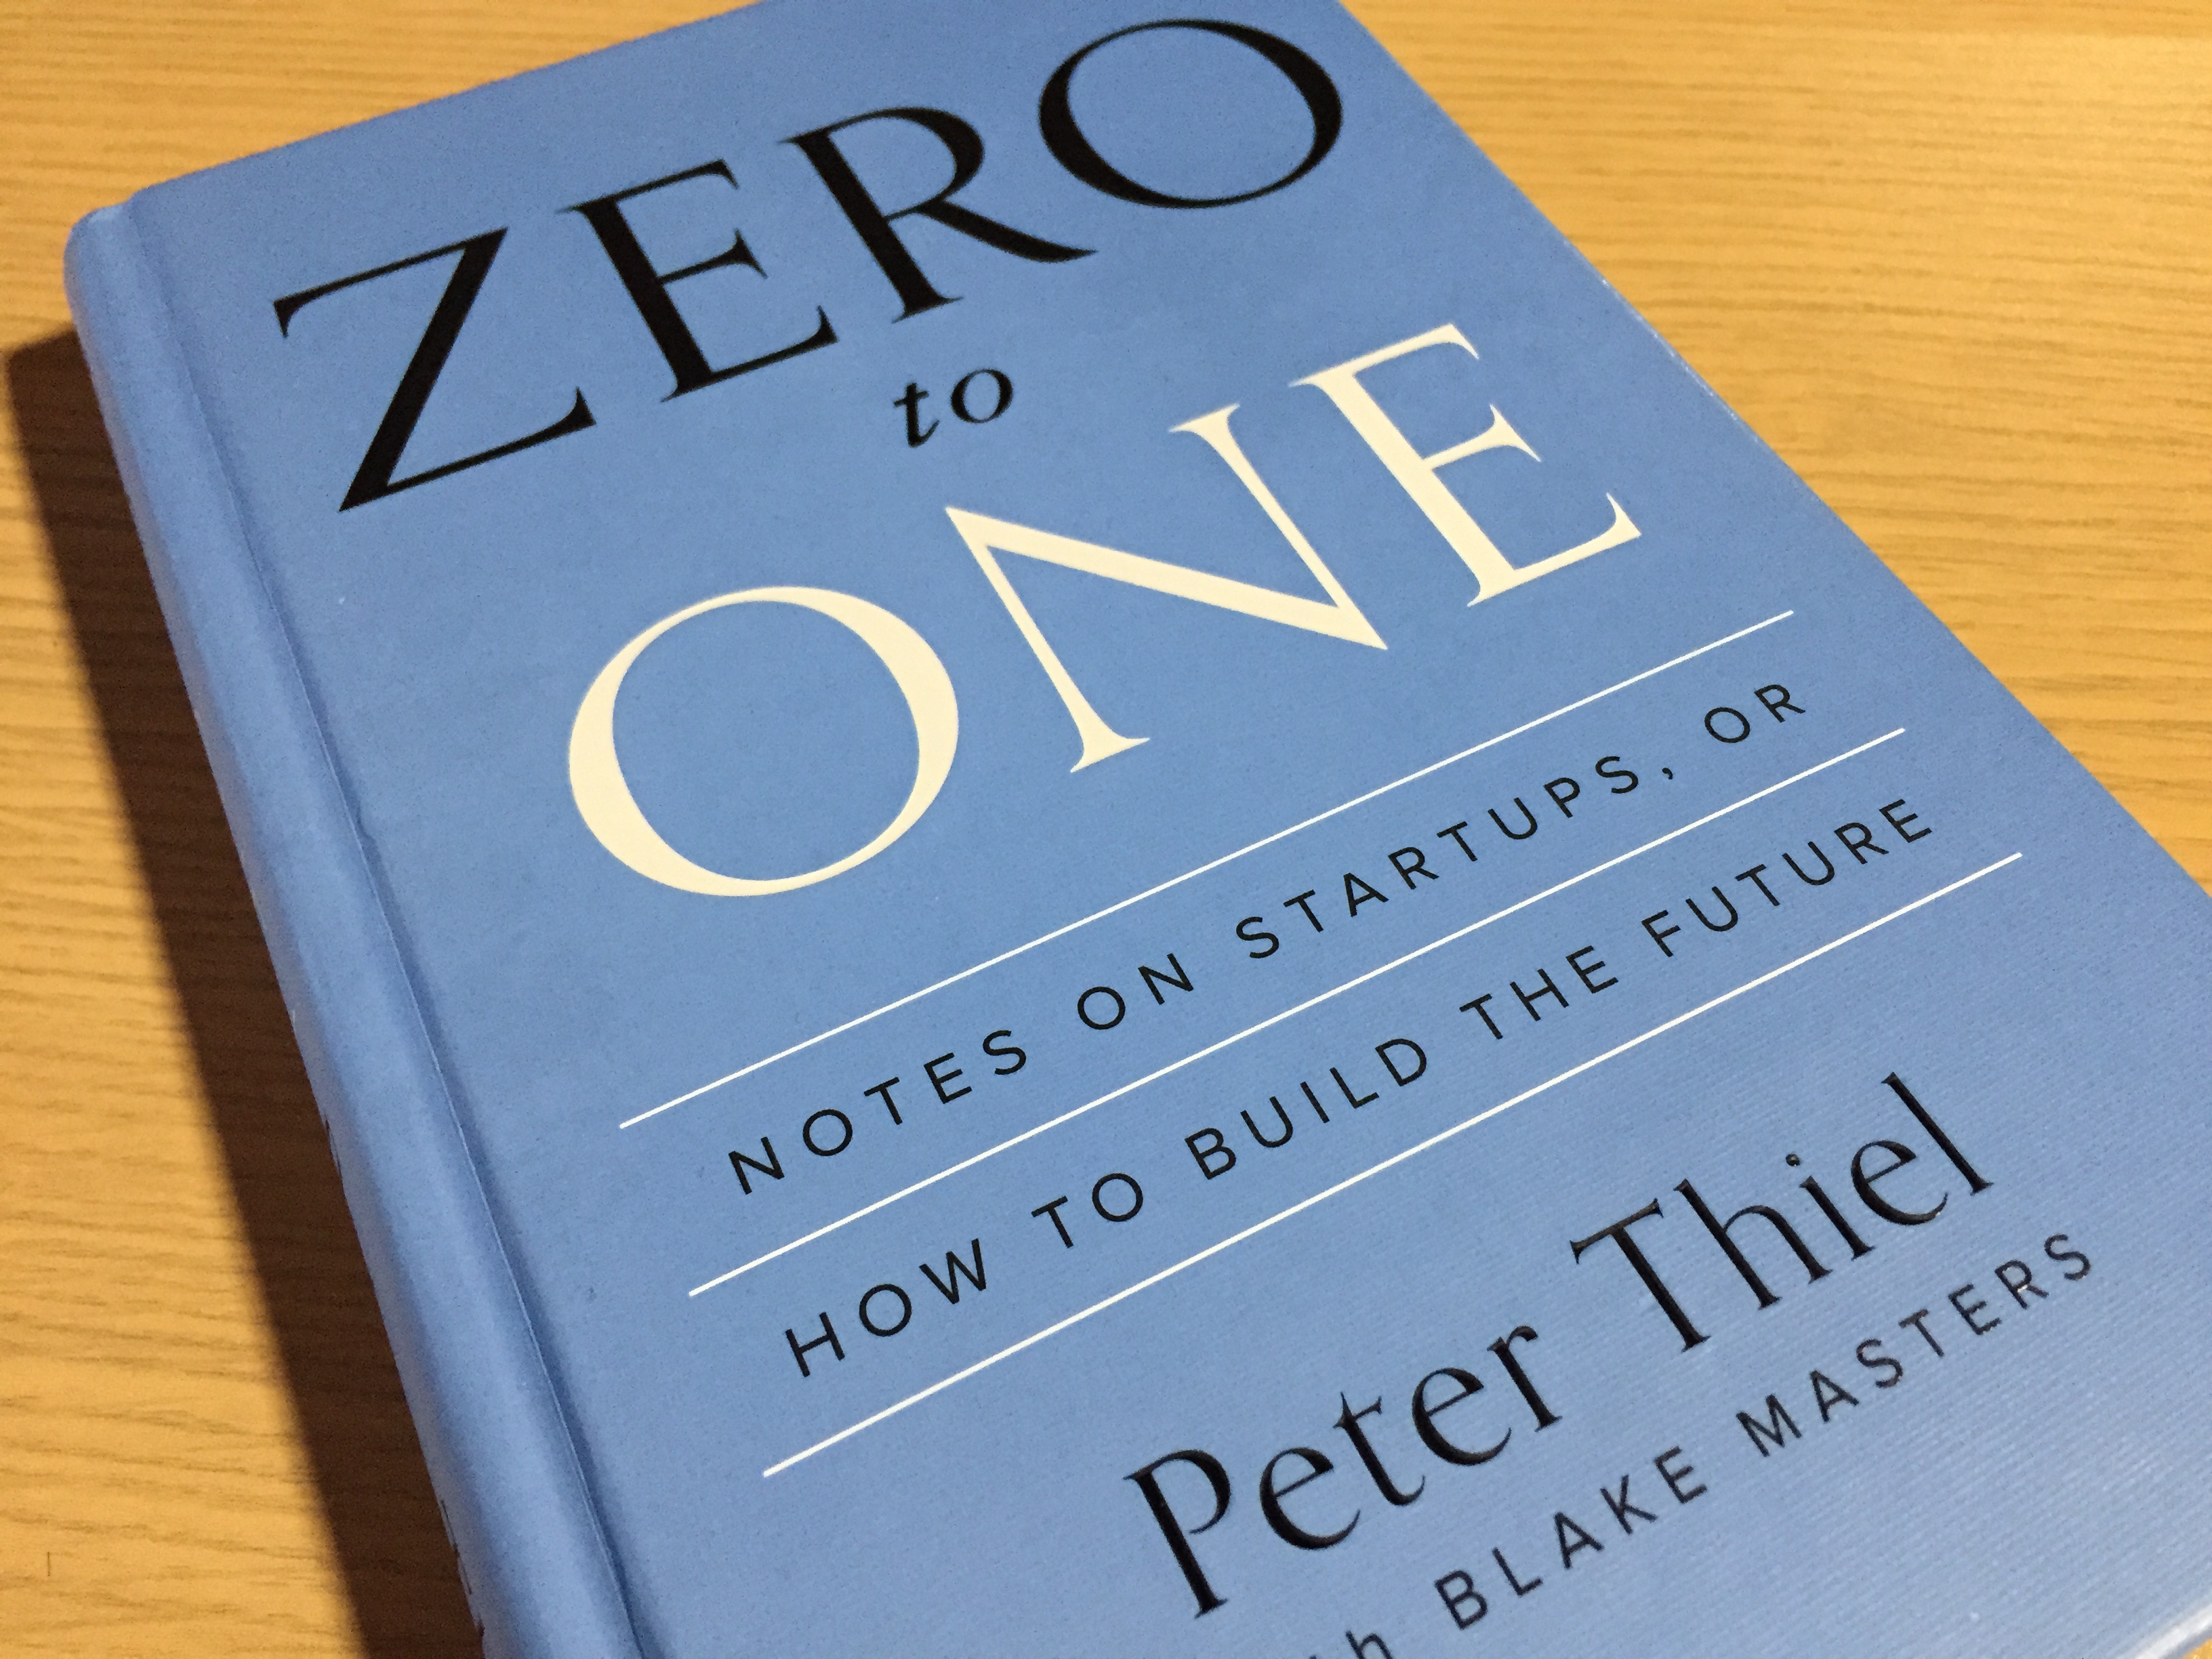 Zero to one peter thiel david jp fisher malvernweather Image collections